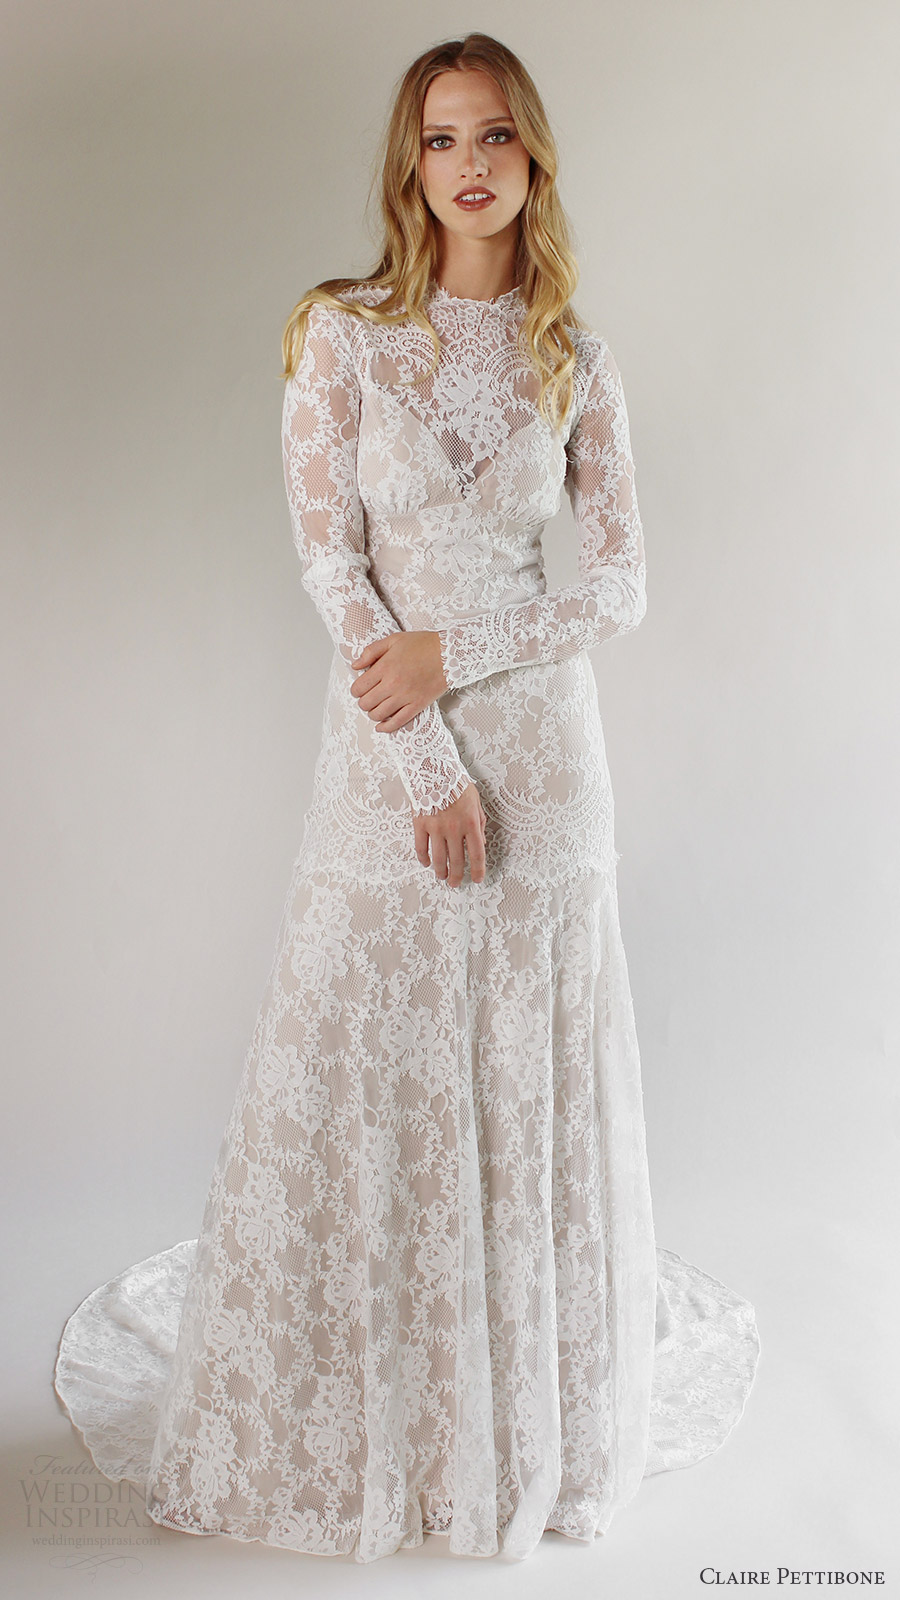 Romantique by claire pettibone spring 2017 wedding dresses for Elegant wedding dresses 2017